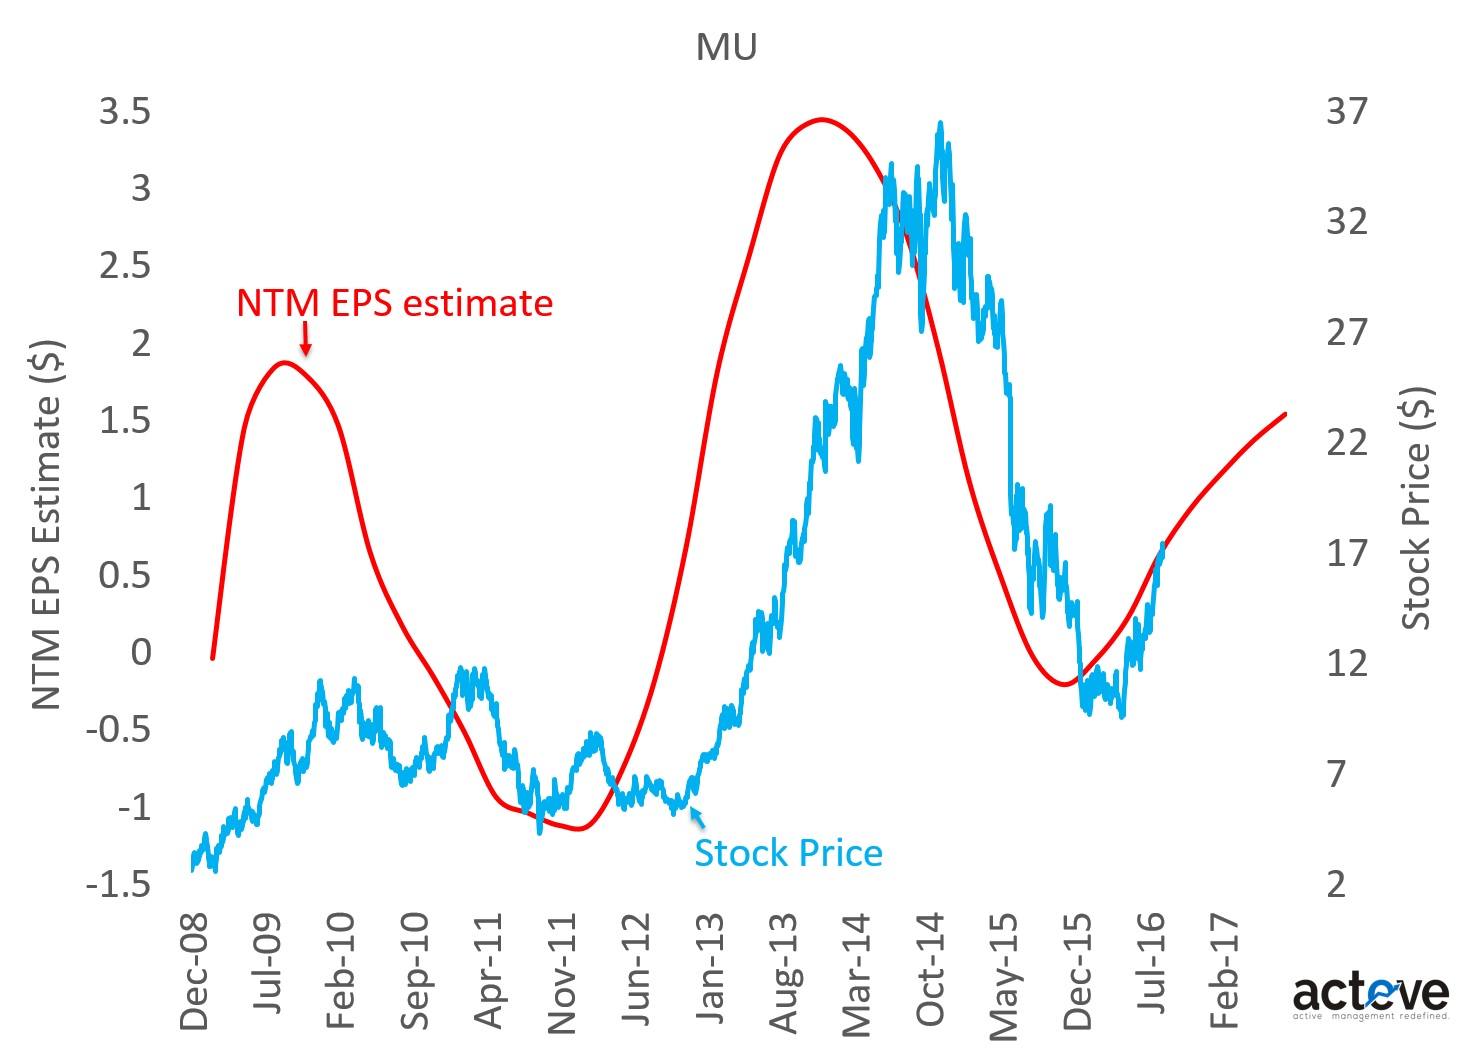 MU stock price vs. NTM EPS